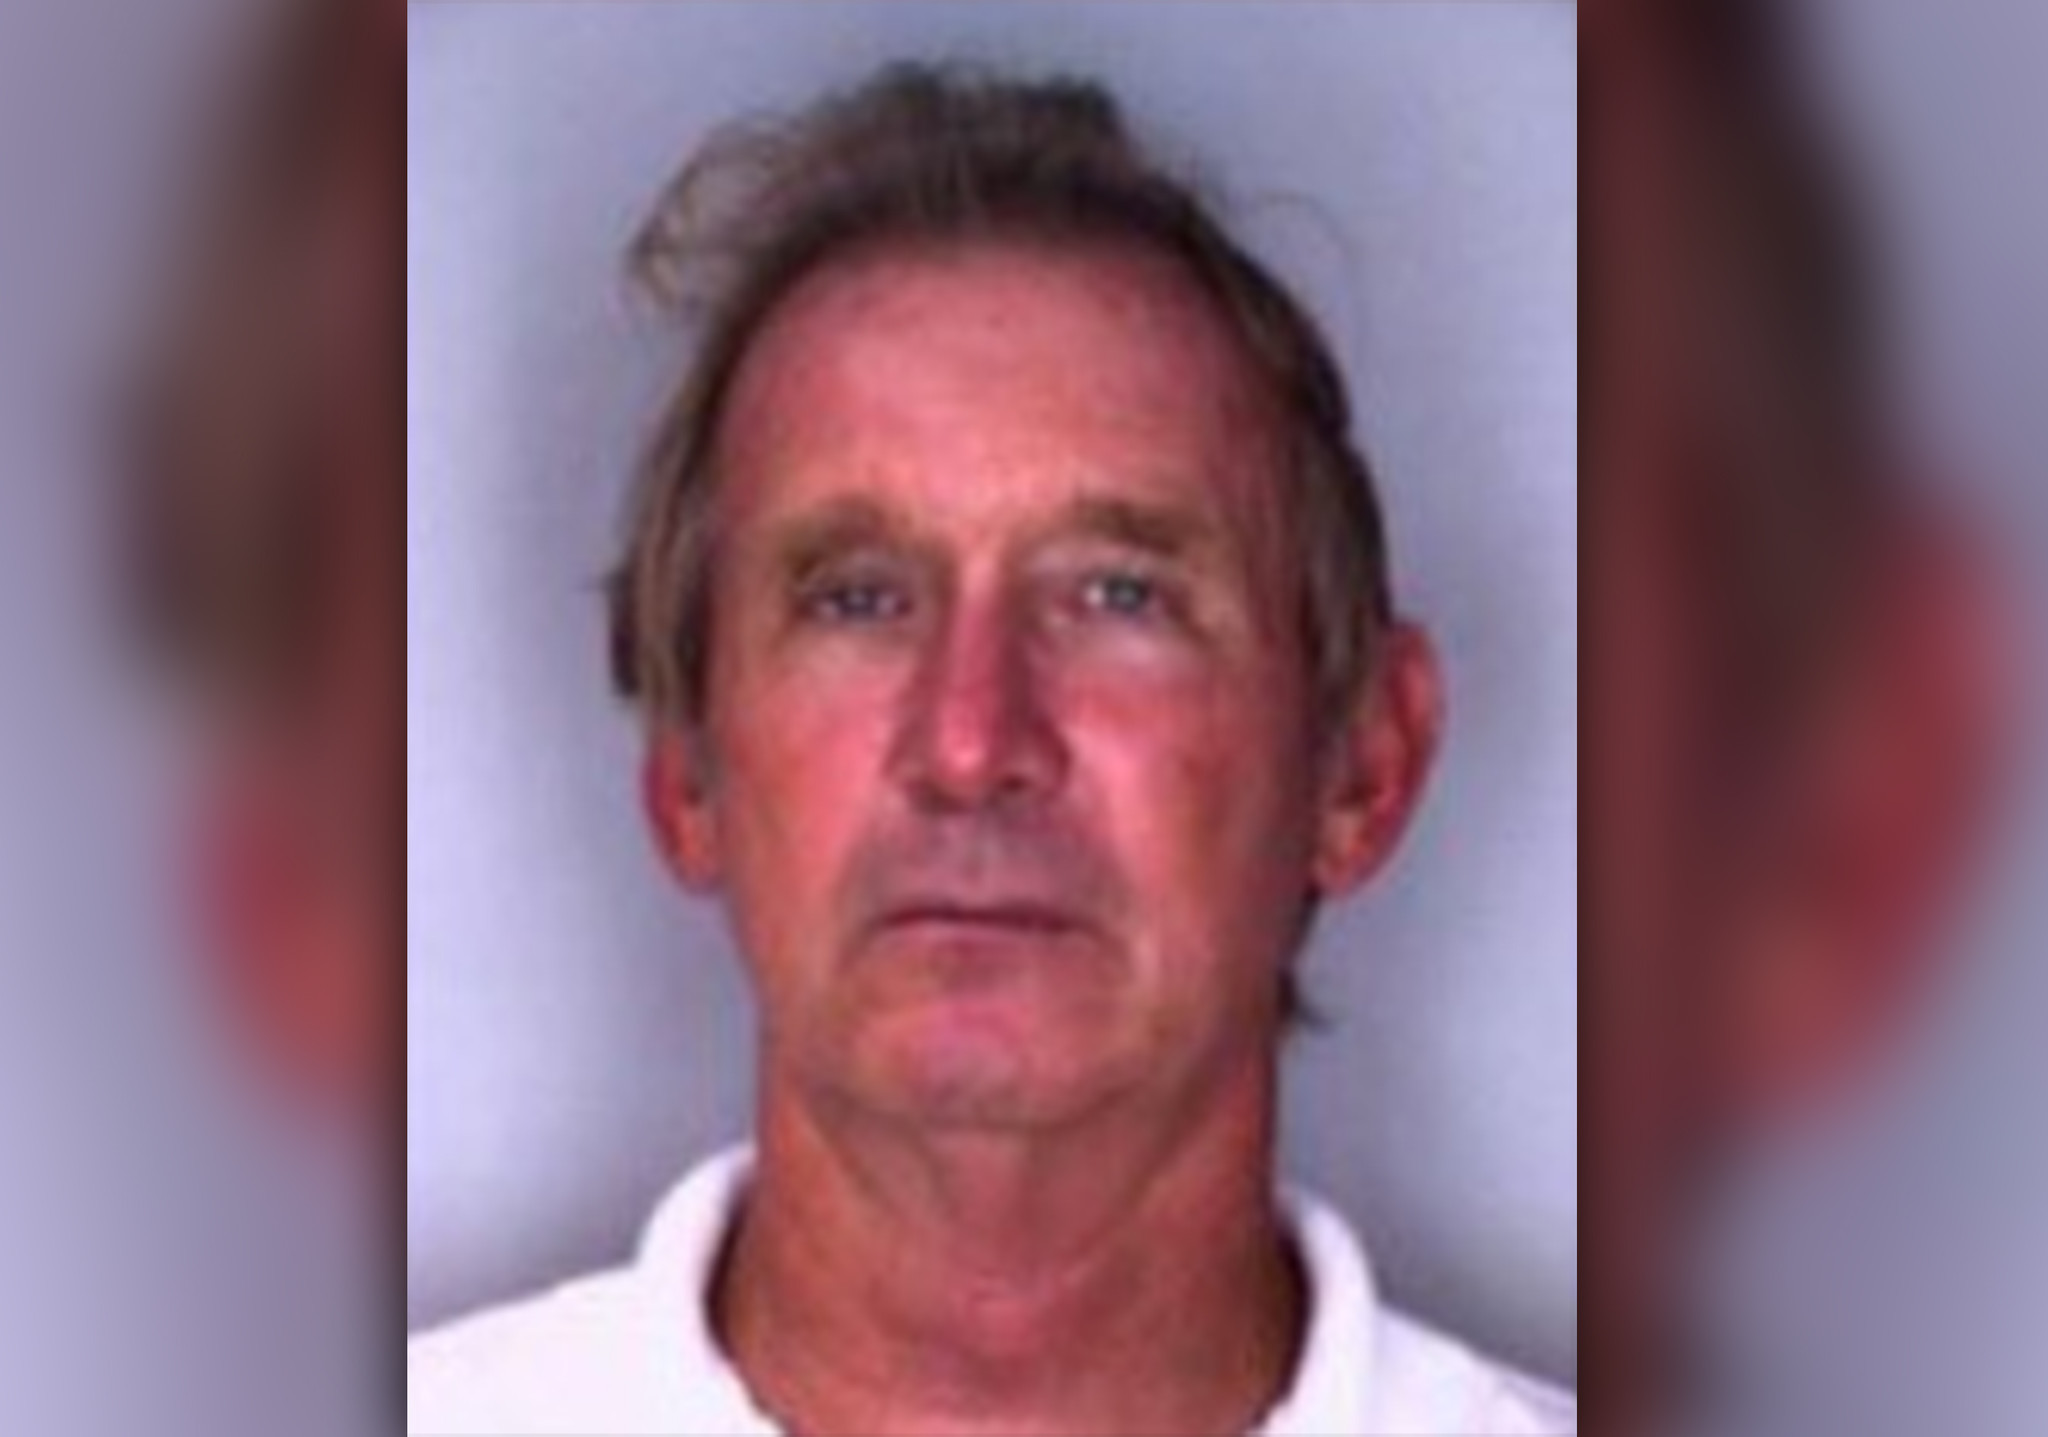 Florida sheriff renews search for missing millionaire Don Lewis, featured in 'Tiger King'